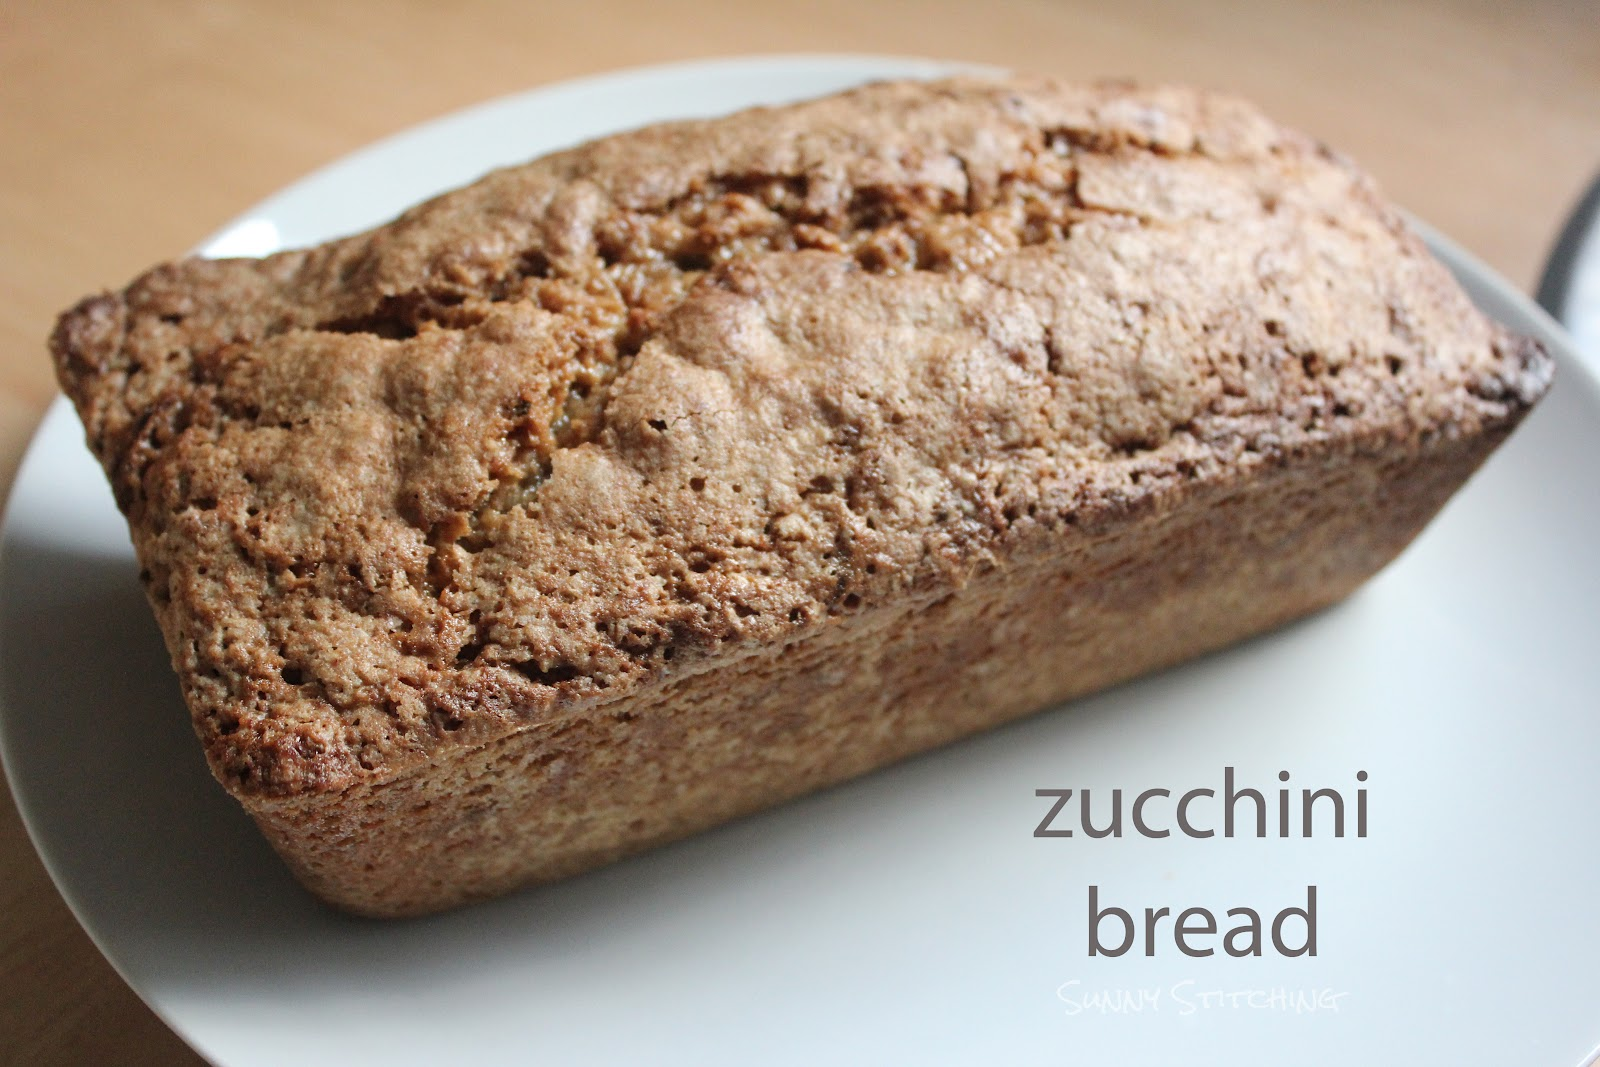 ... zucchini bread...or should I say pain de courgettes? Either way, it's